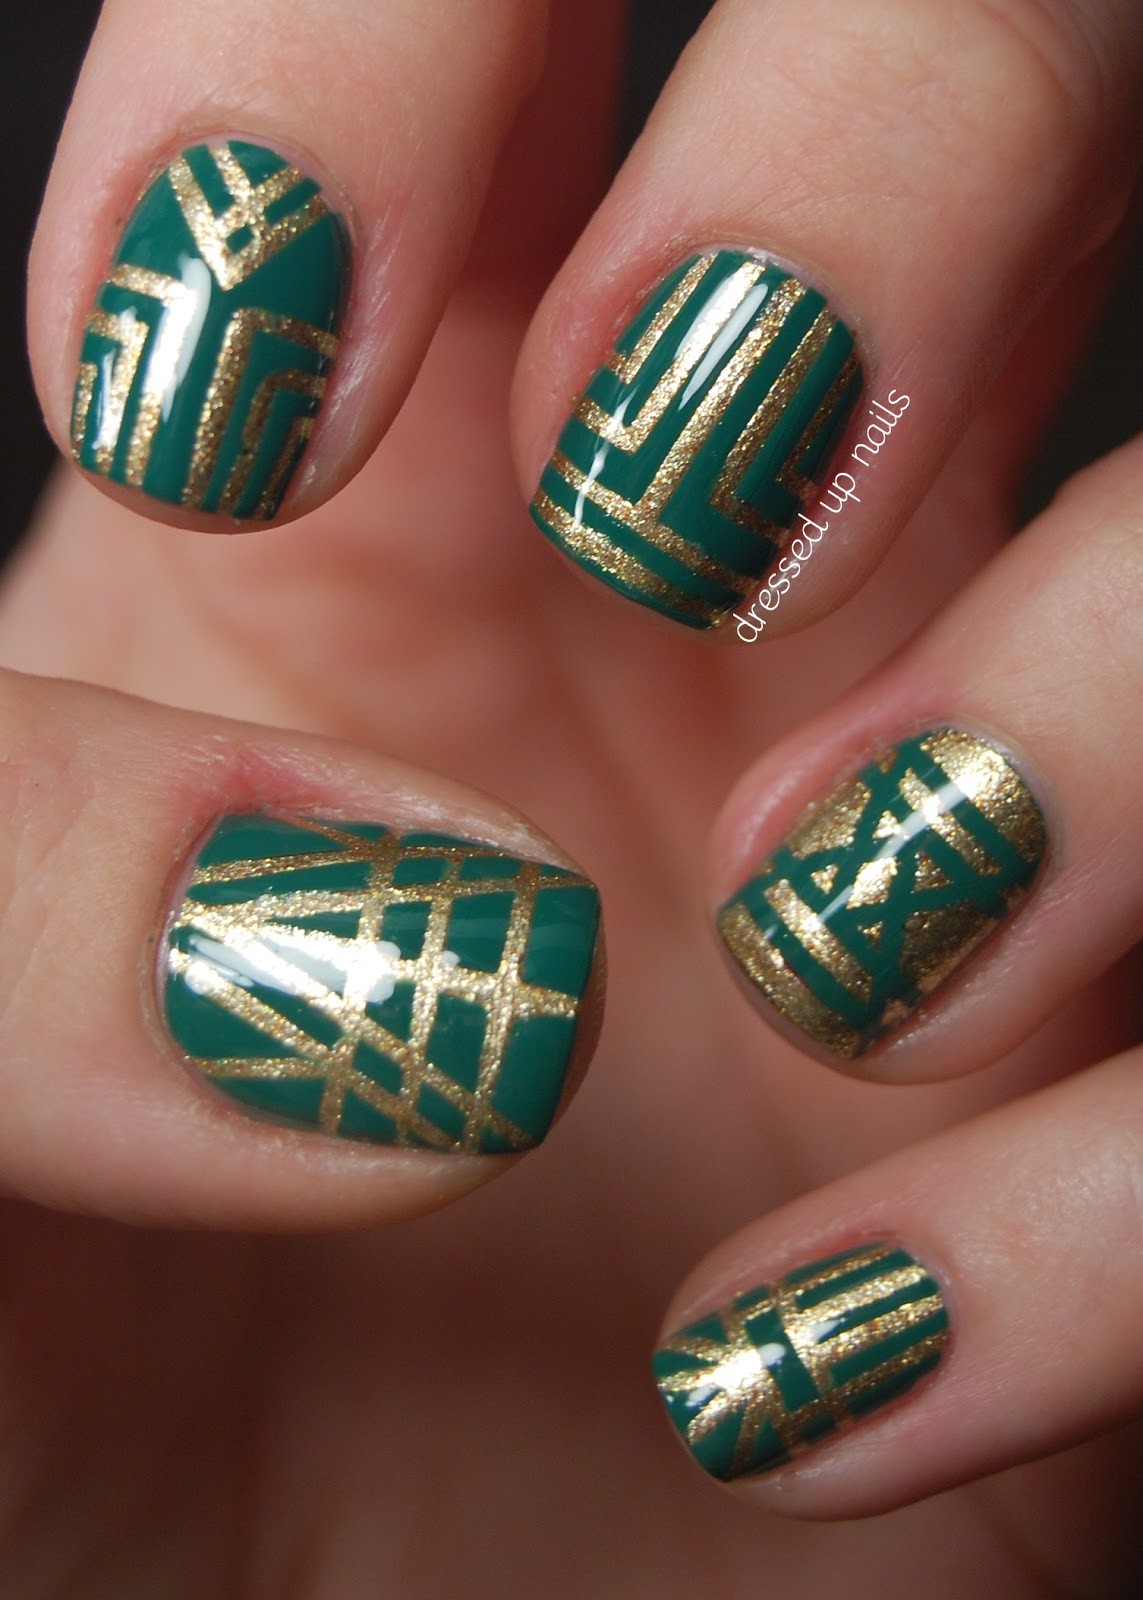 These nails also fit the theme of emerald nail art day which brittney